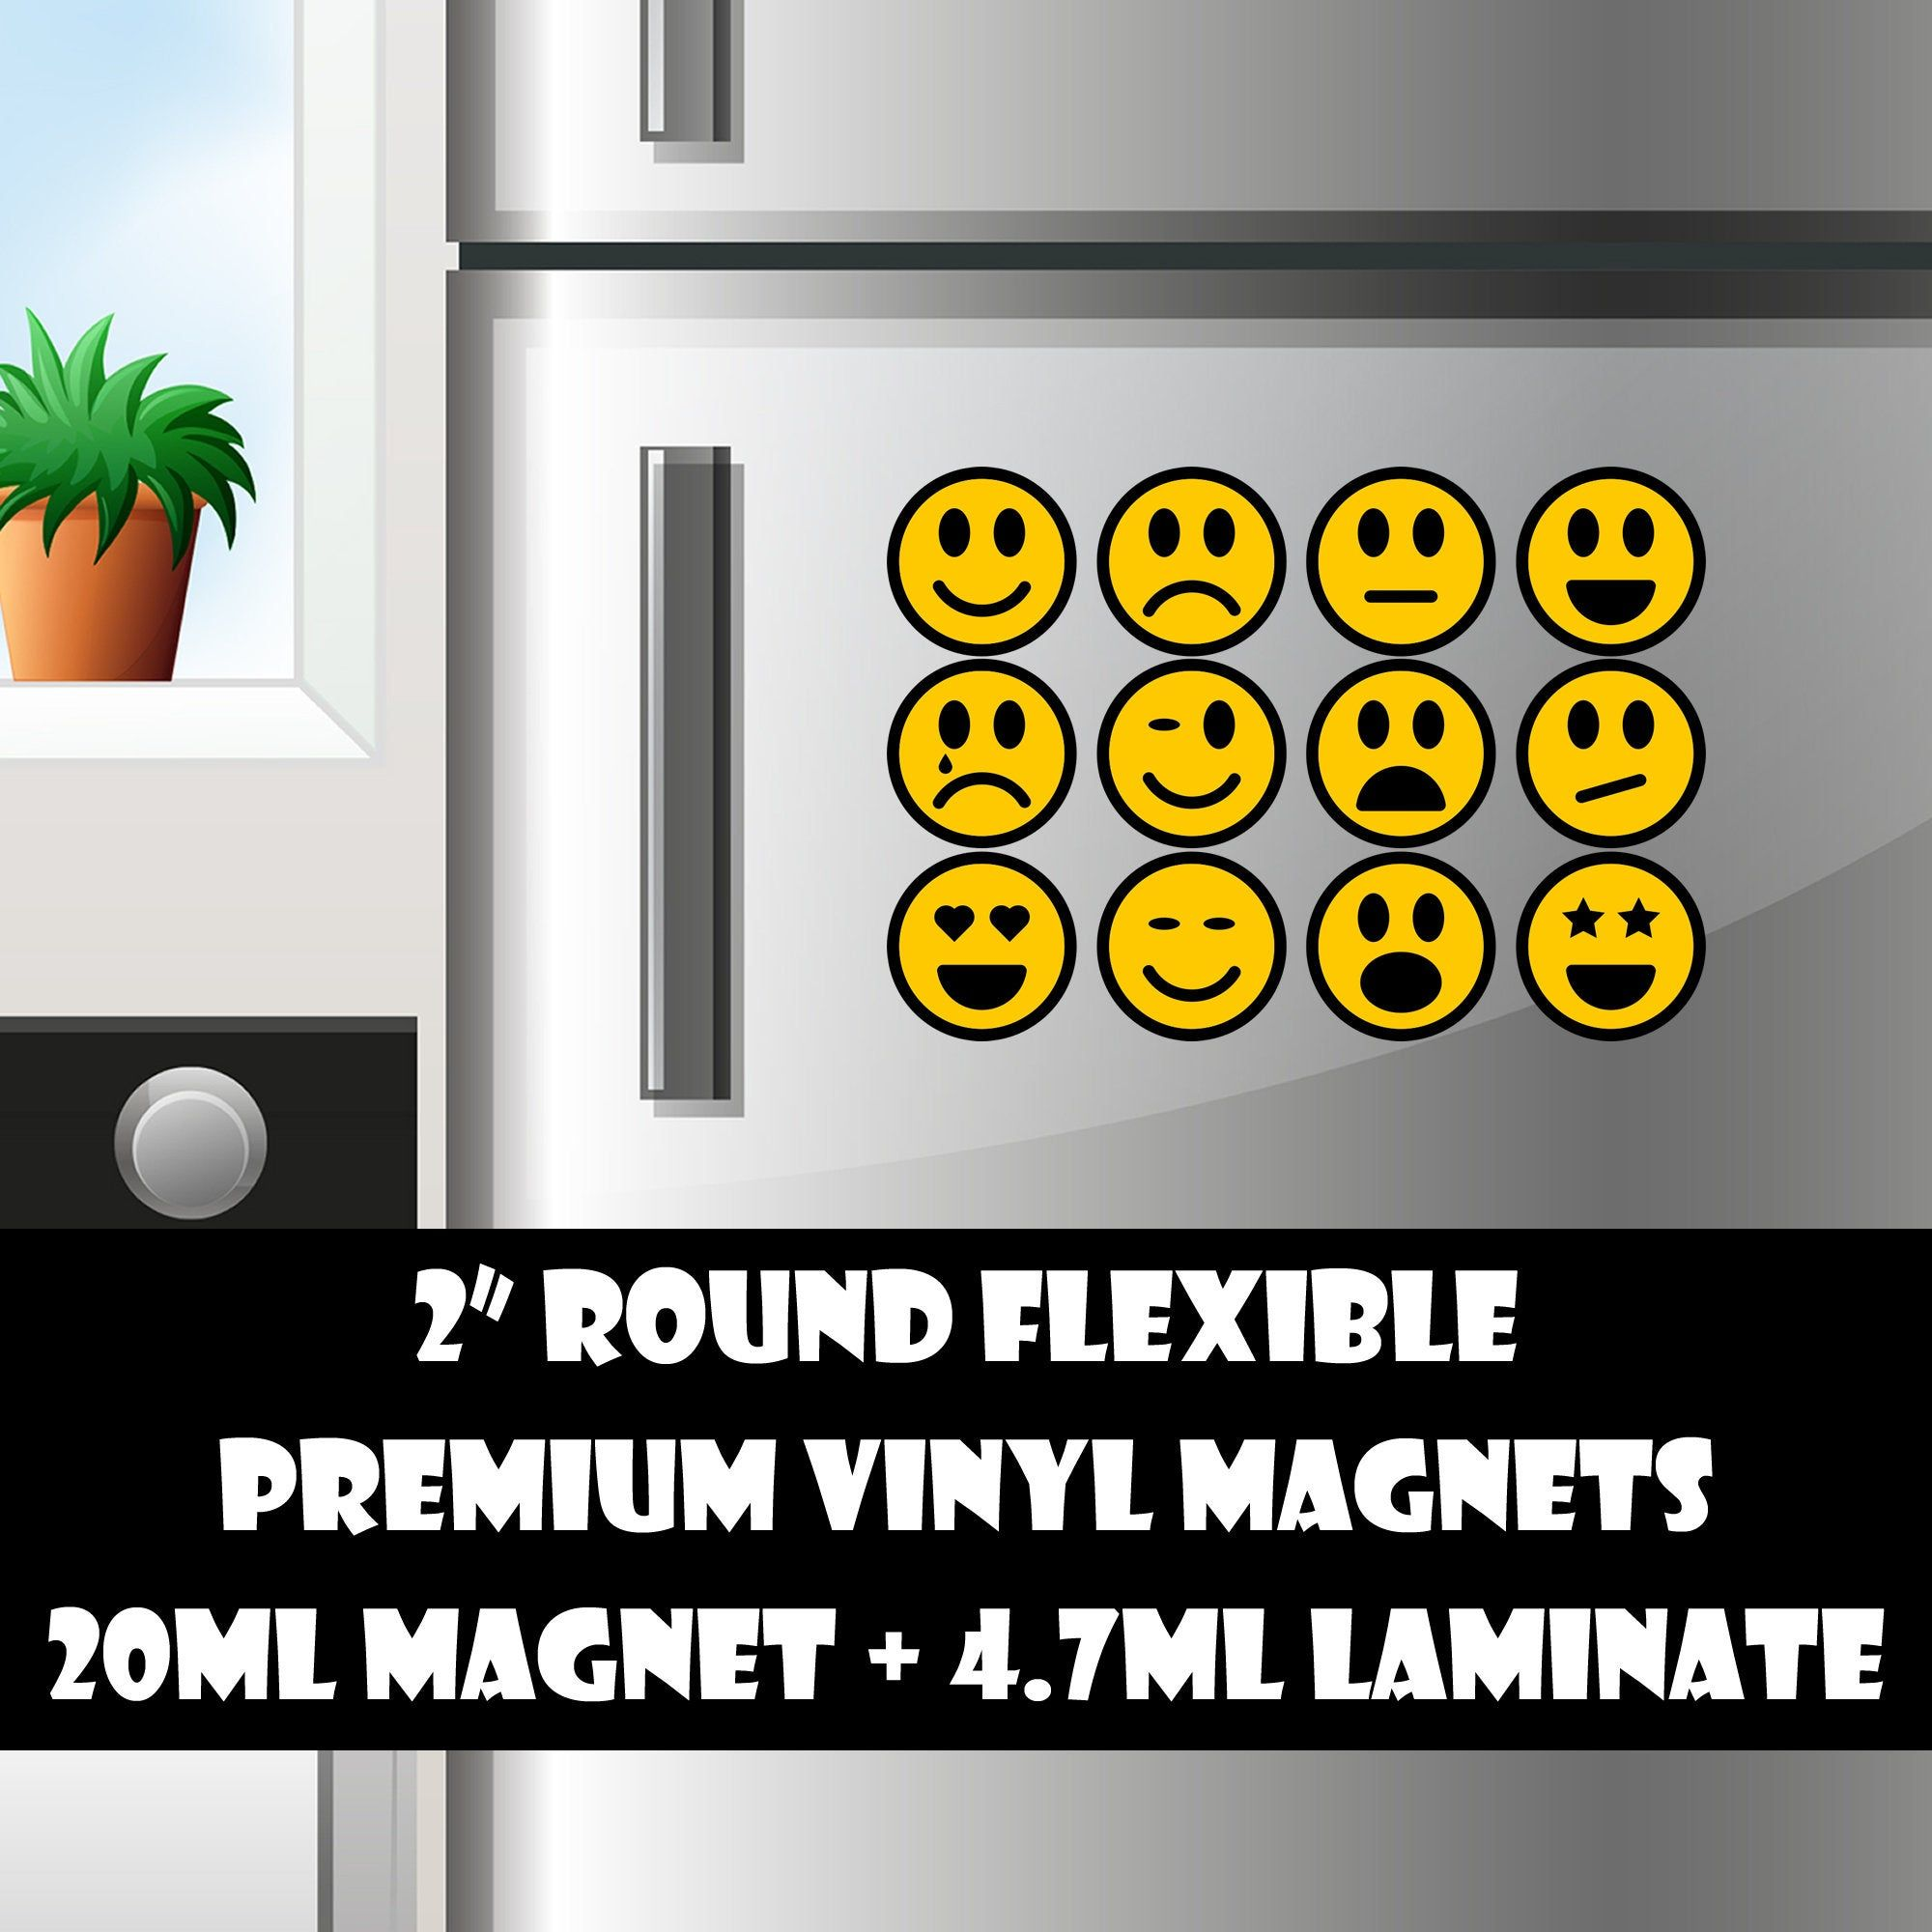 12 2inch Round Emoticons Standard Photo Or Vinyl Print Materials With Laminate Or Magnet Options Available Magnetic Bumper Stickers Vinyl Magnets Printed Materials